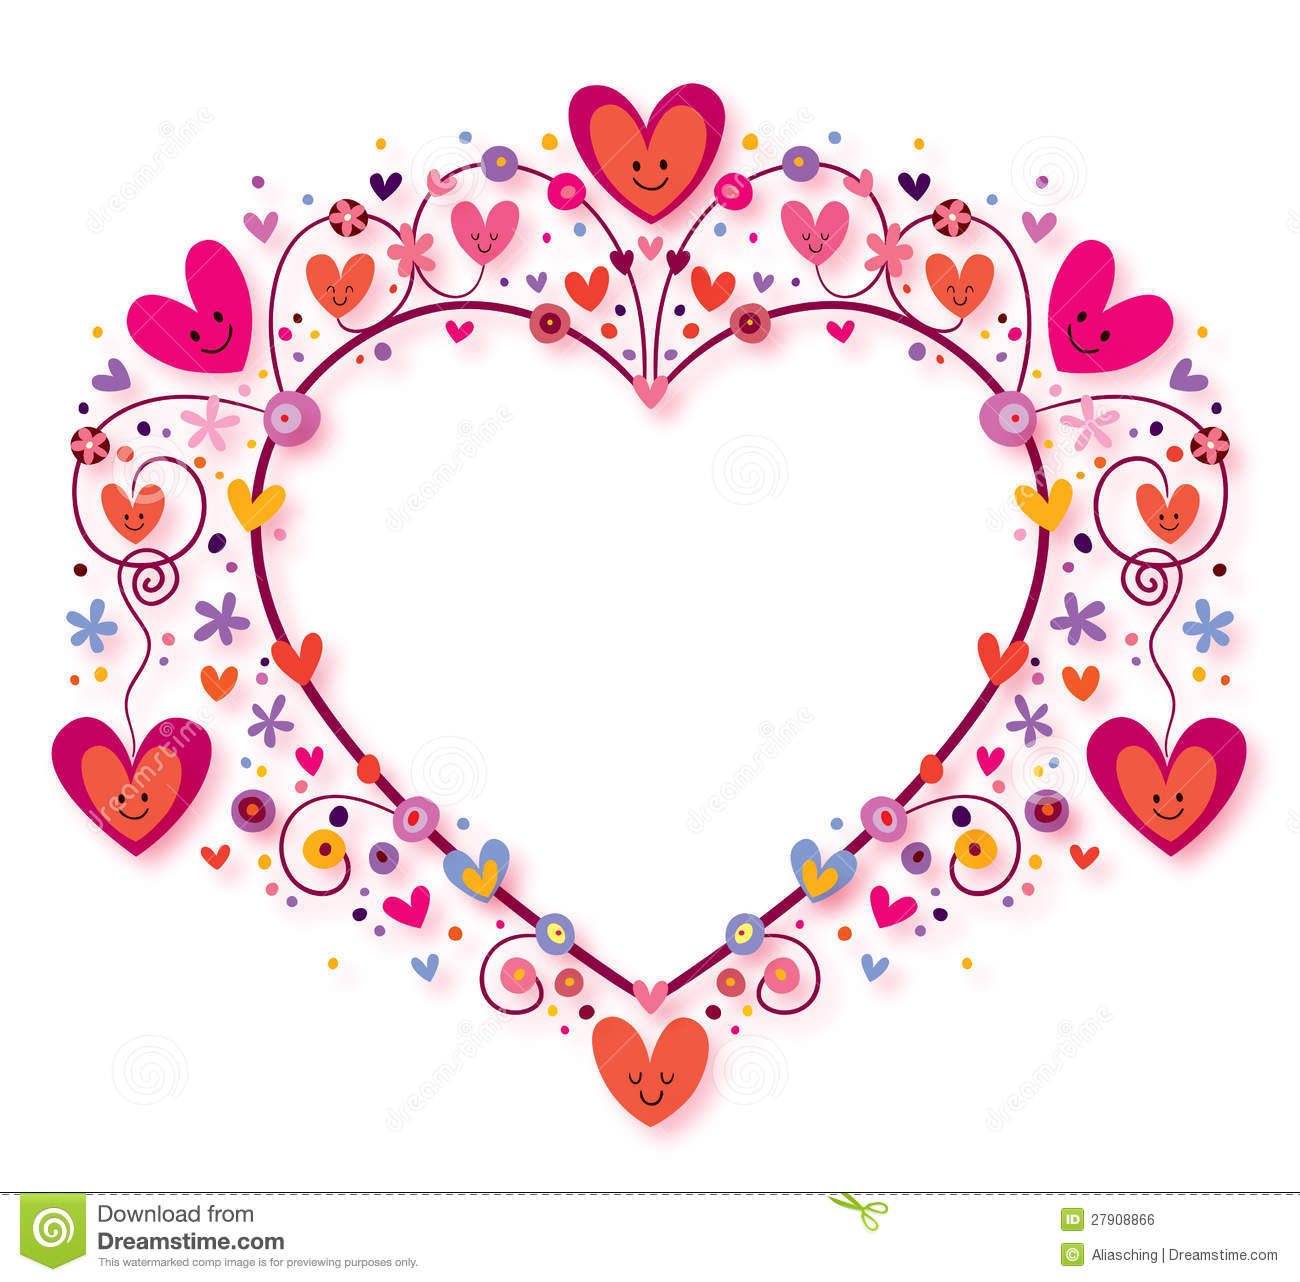 Shiny heart frame, 3160, download royalty-free vector clipart (EPS)